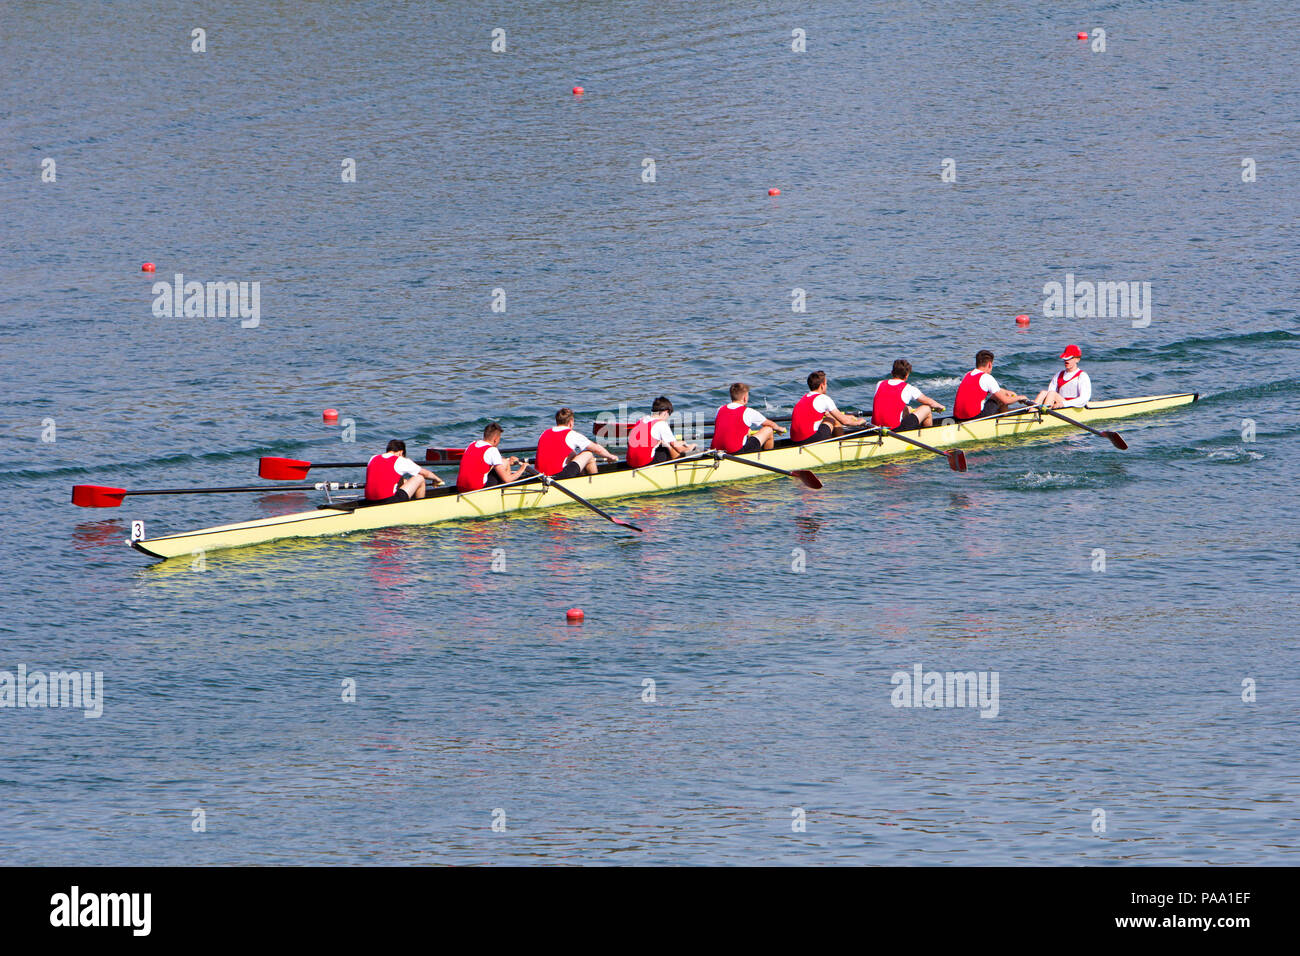 Rowers in eight-oar rowing boats on the tranquil lake - Stock Image